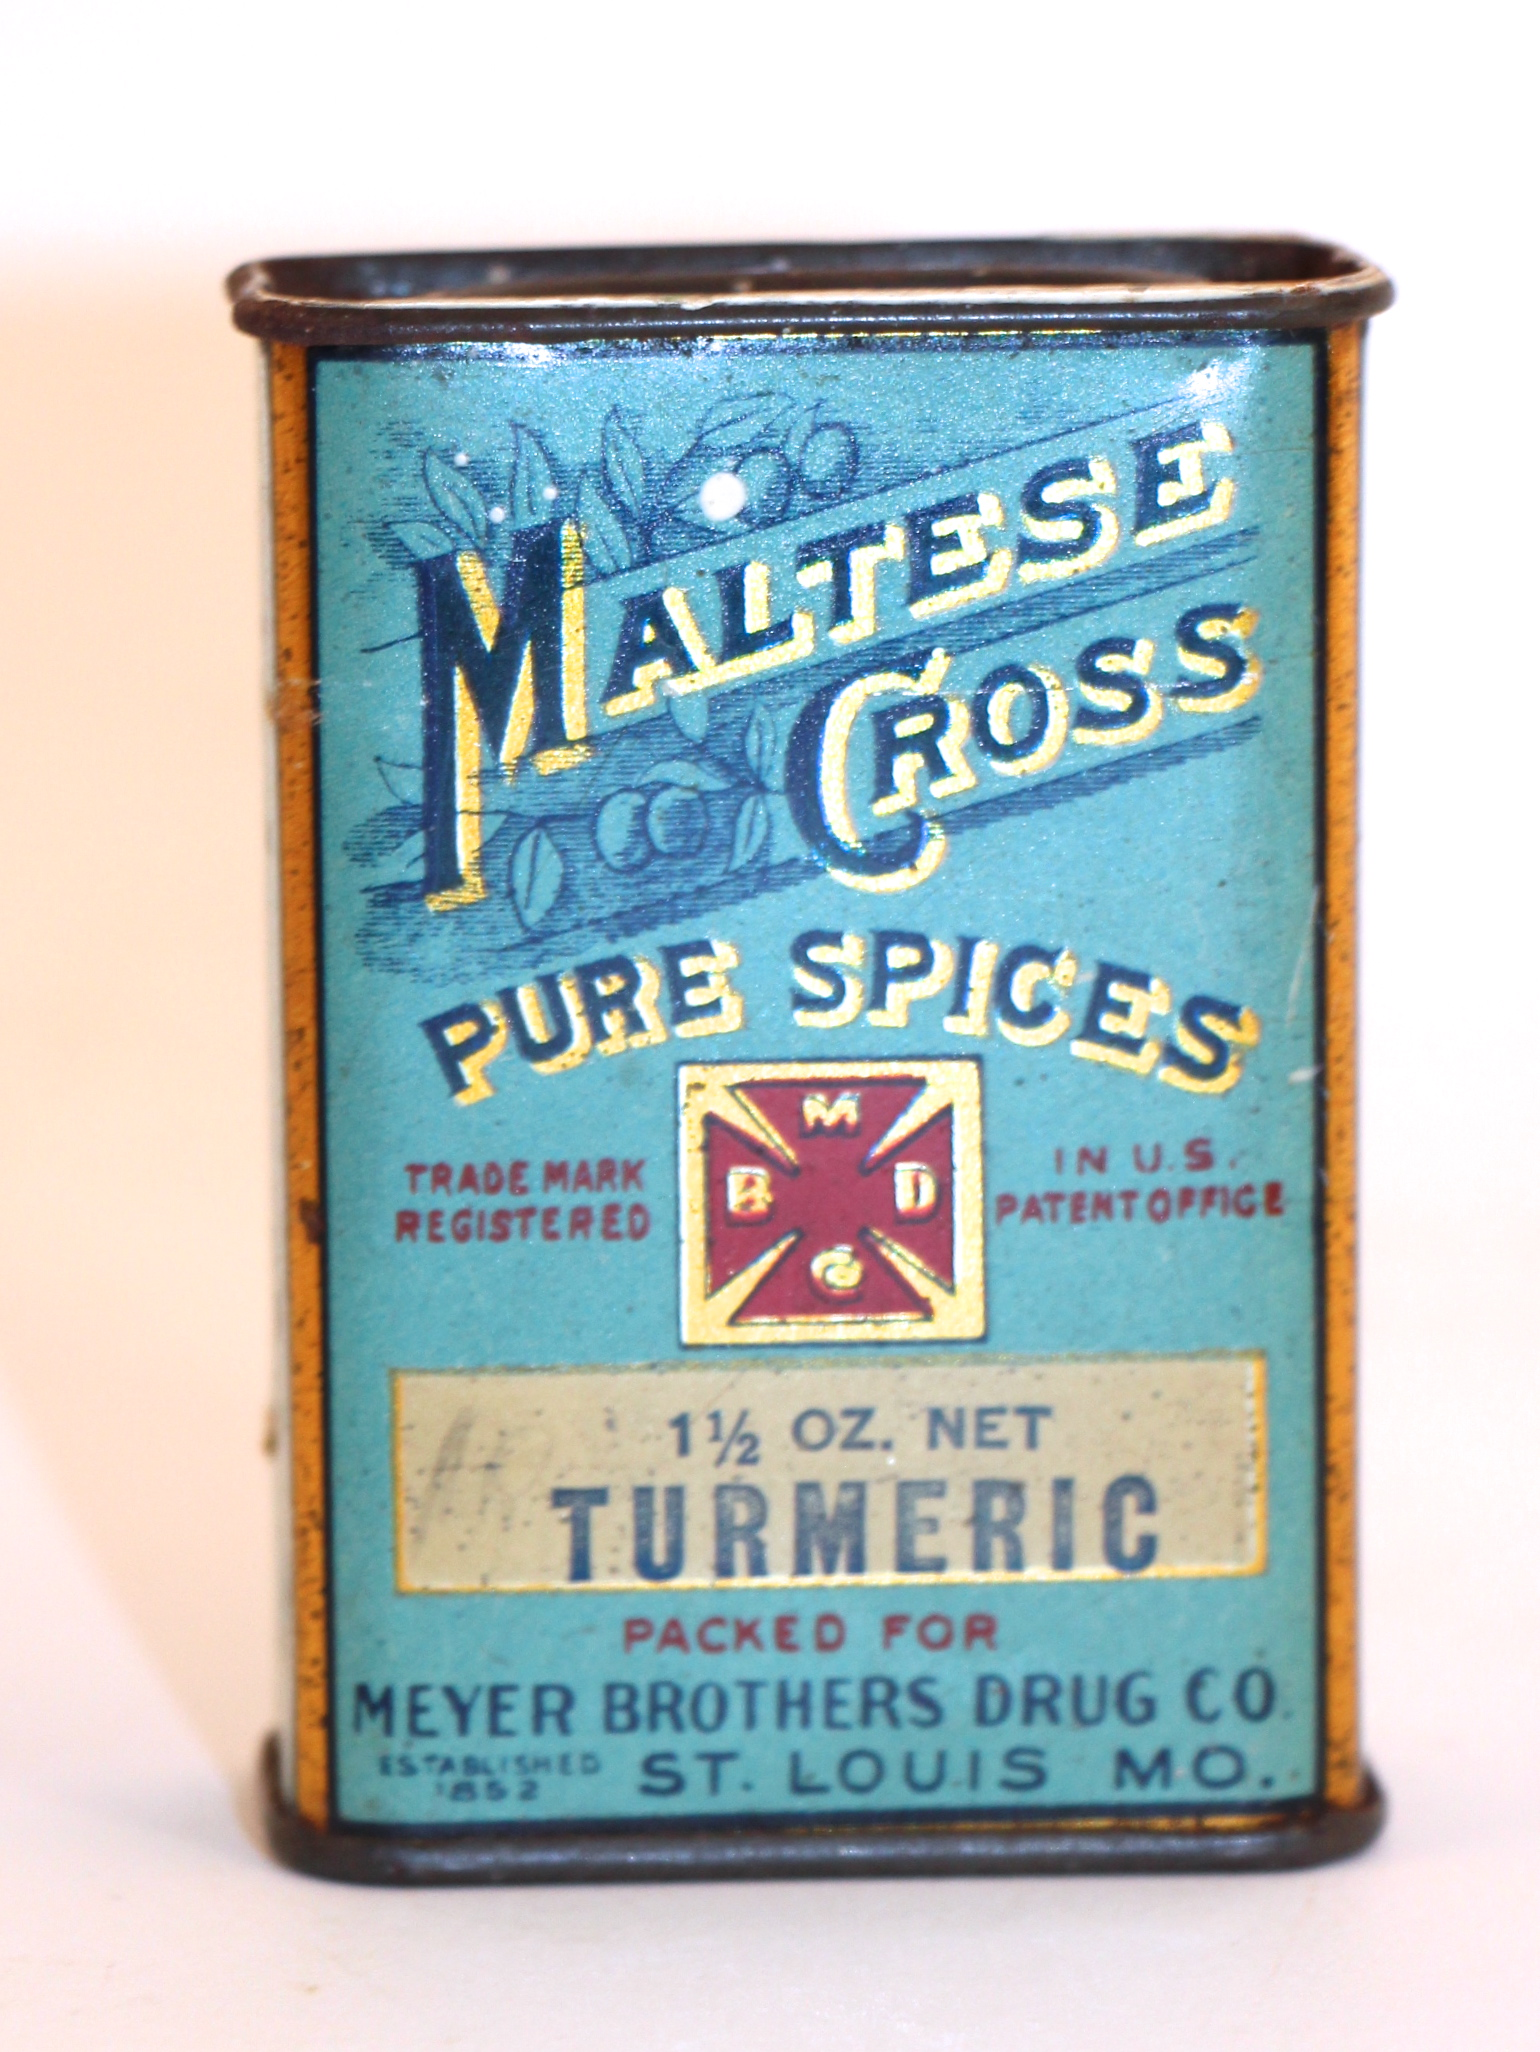 Maltese Cross Pure Spice Tin, Meyer Brothers Drug Co., St. Louis, MO